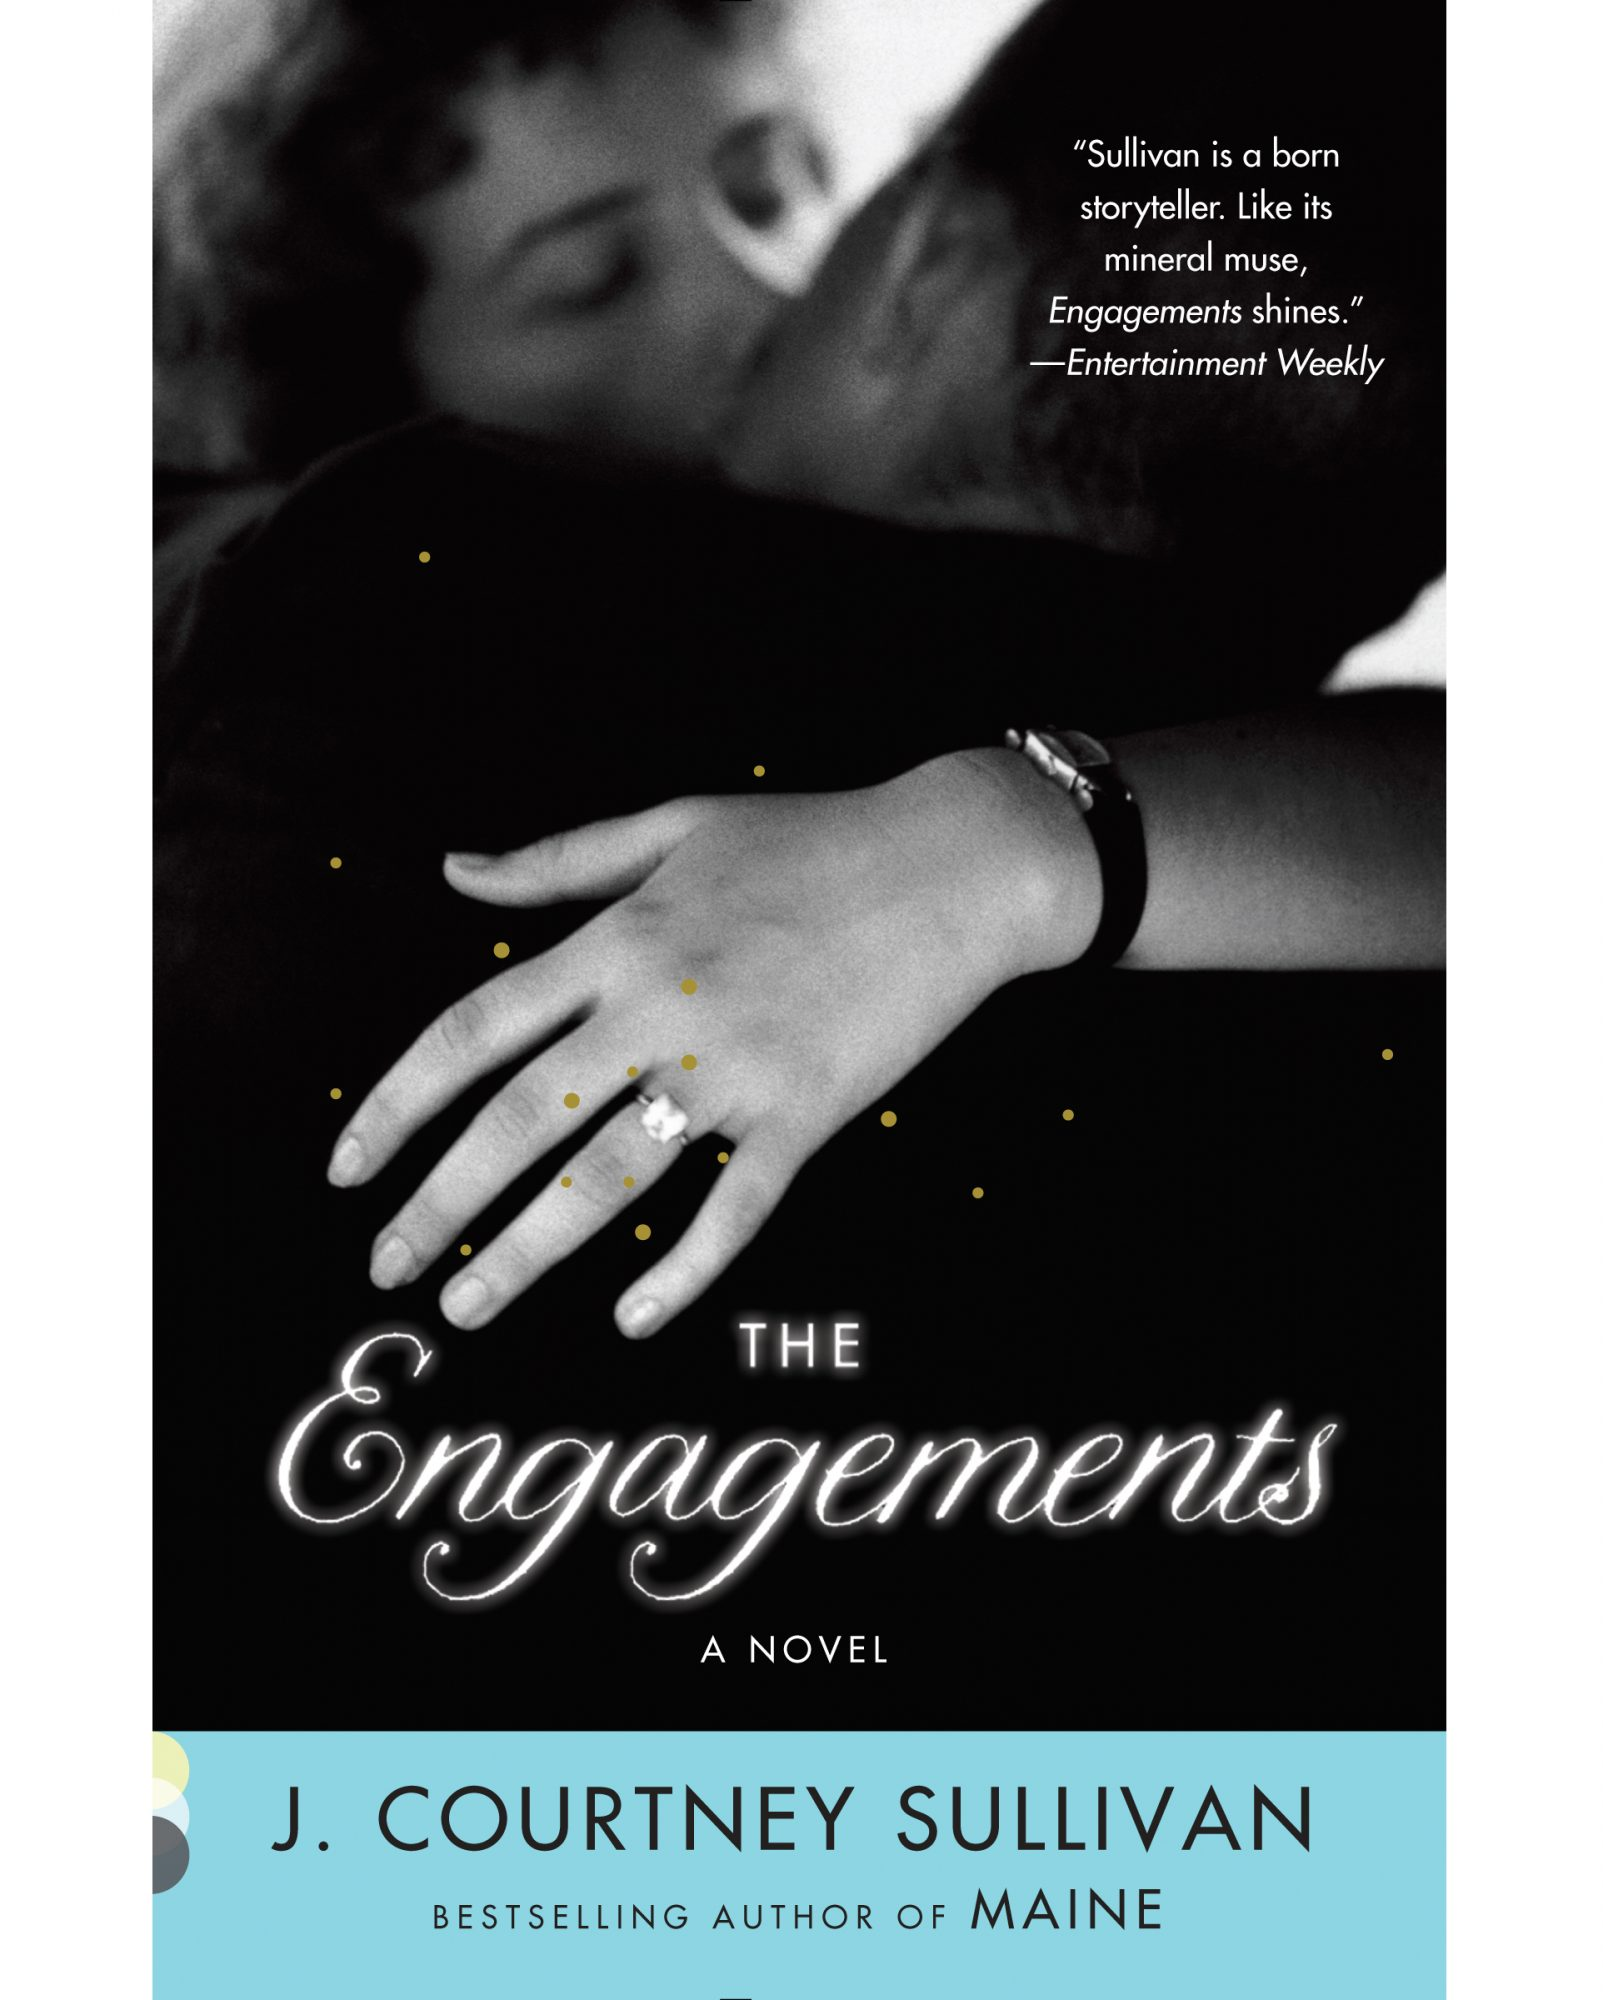 """The Engagements"" by J. Courtney Sullivan"